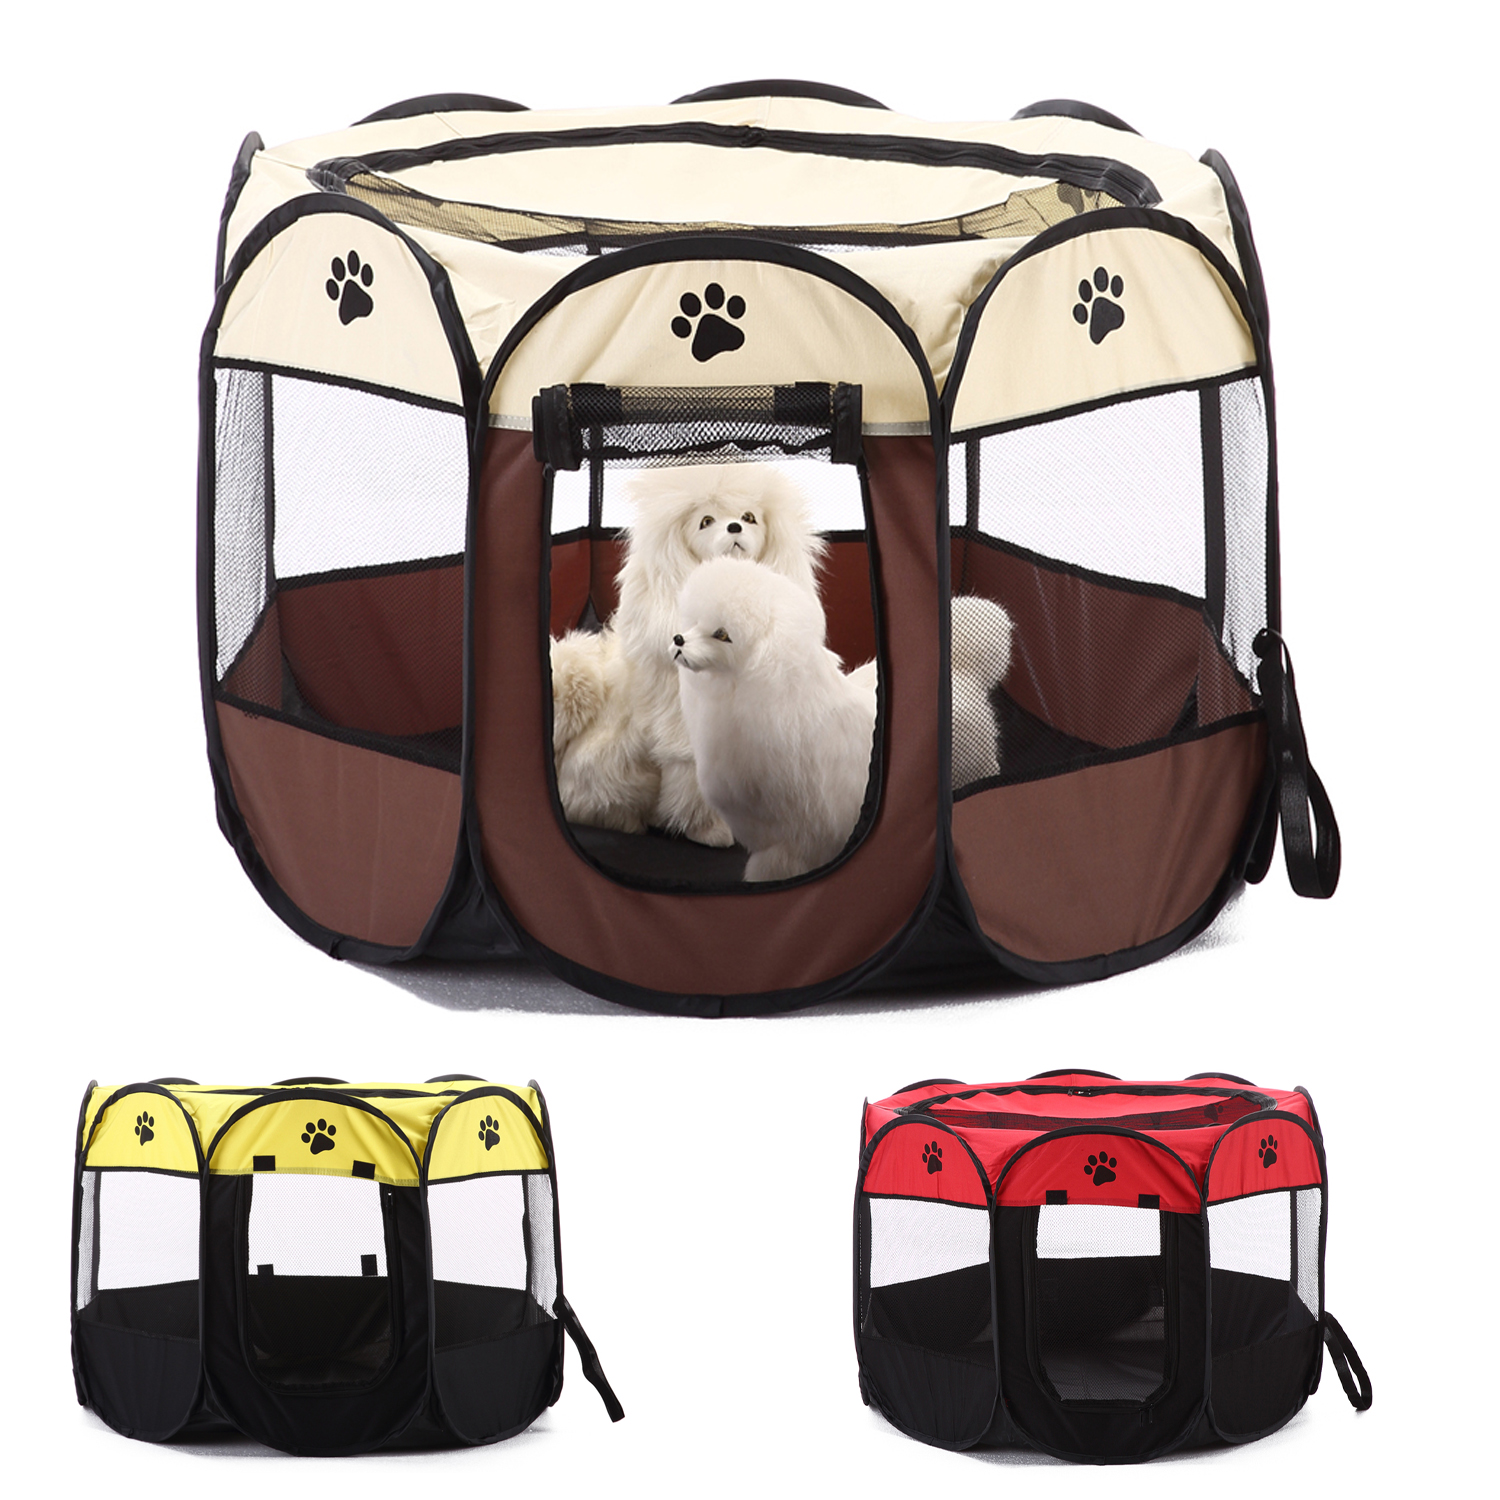 Portable Foldable Pet Playpen Carrying <font><b>Kennel</b></font> Collapsible Travel Tent Indoor Outdoor Use Water resistant Removable Shade Cover image